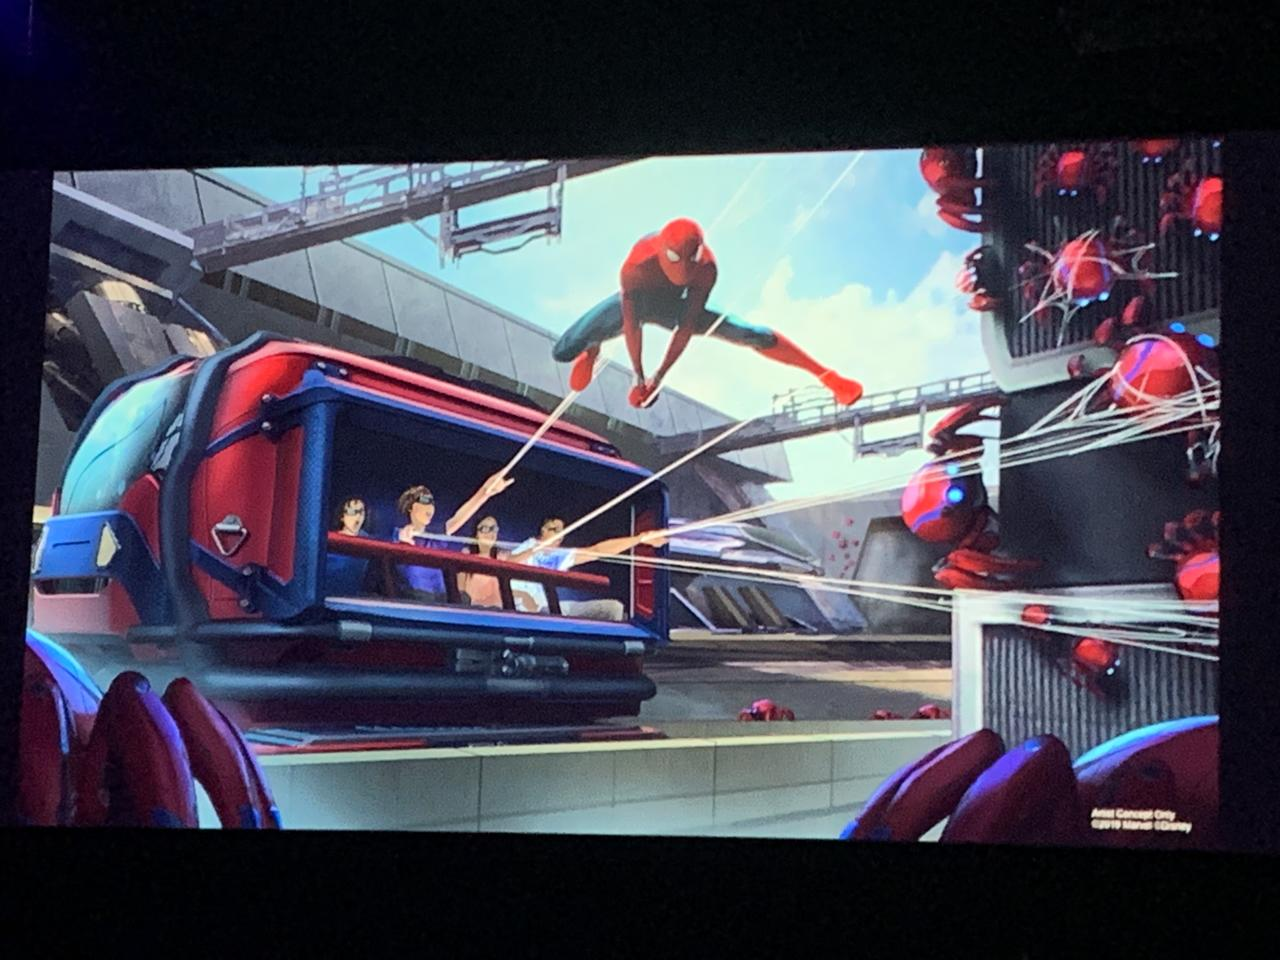 There's a Spider-Man ride